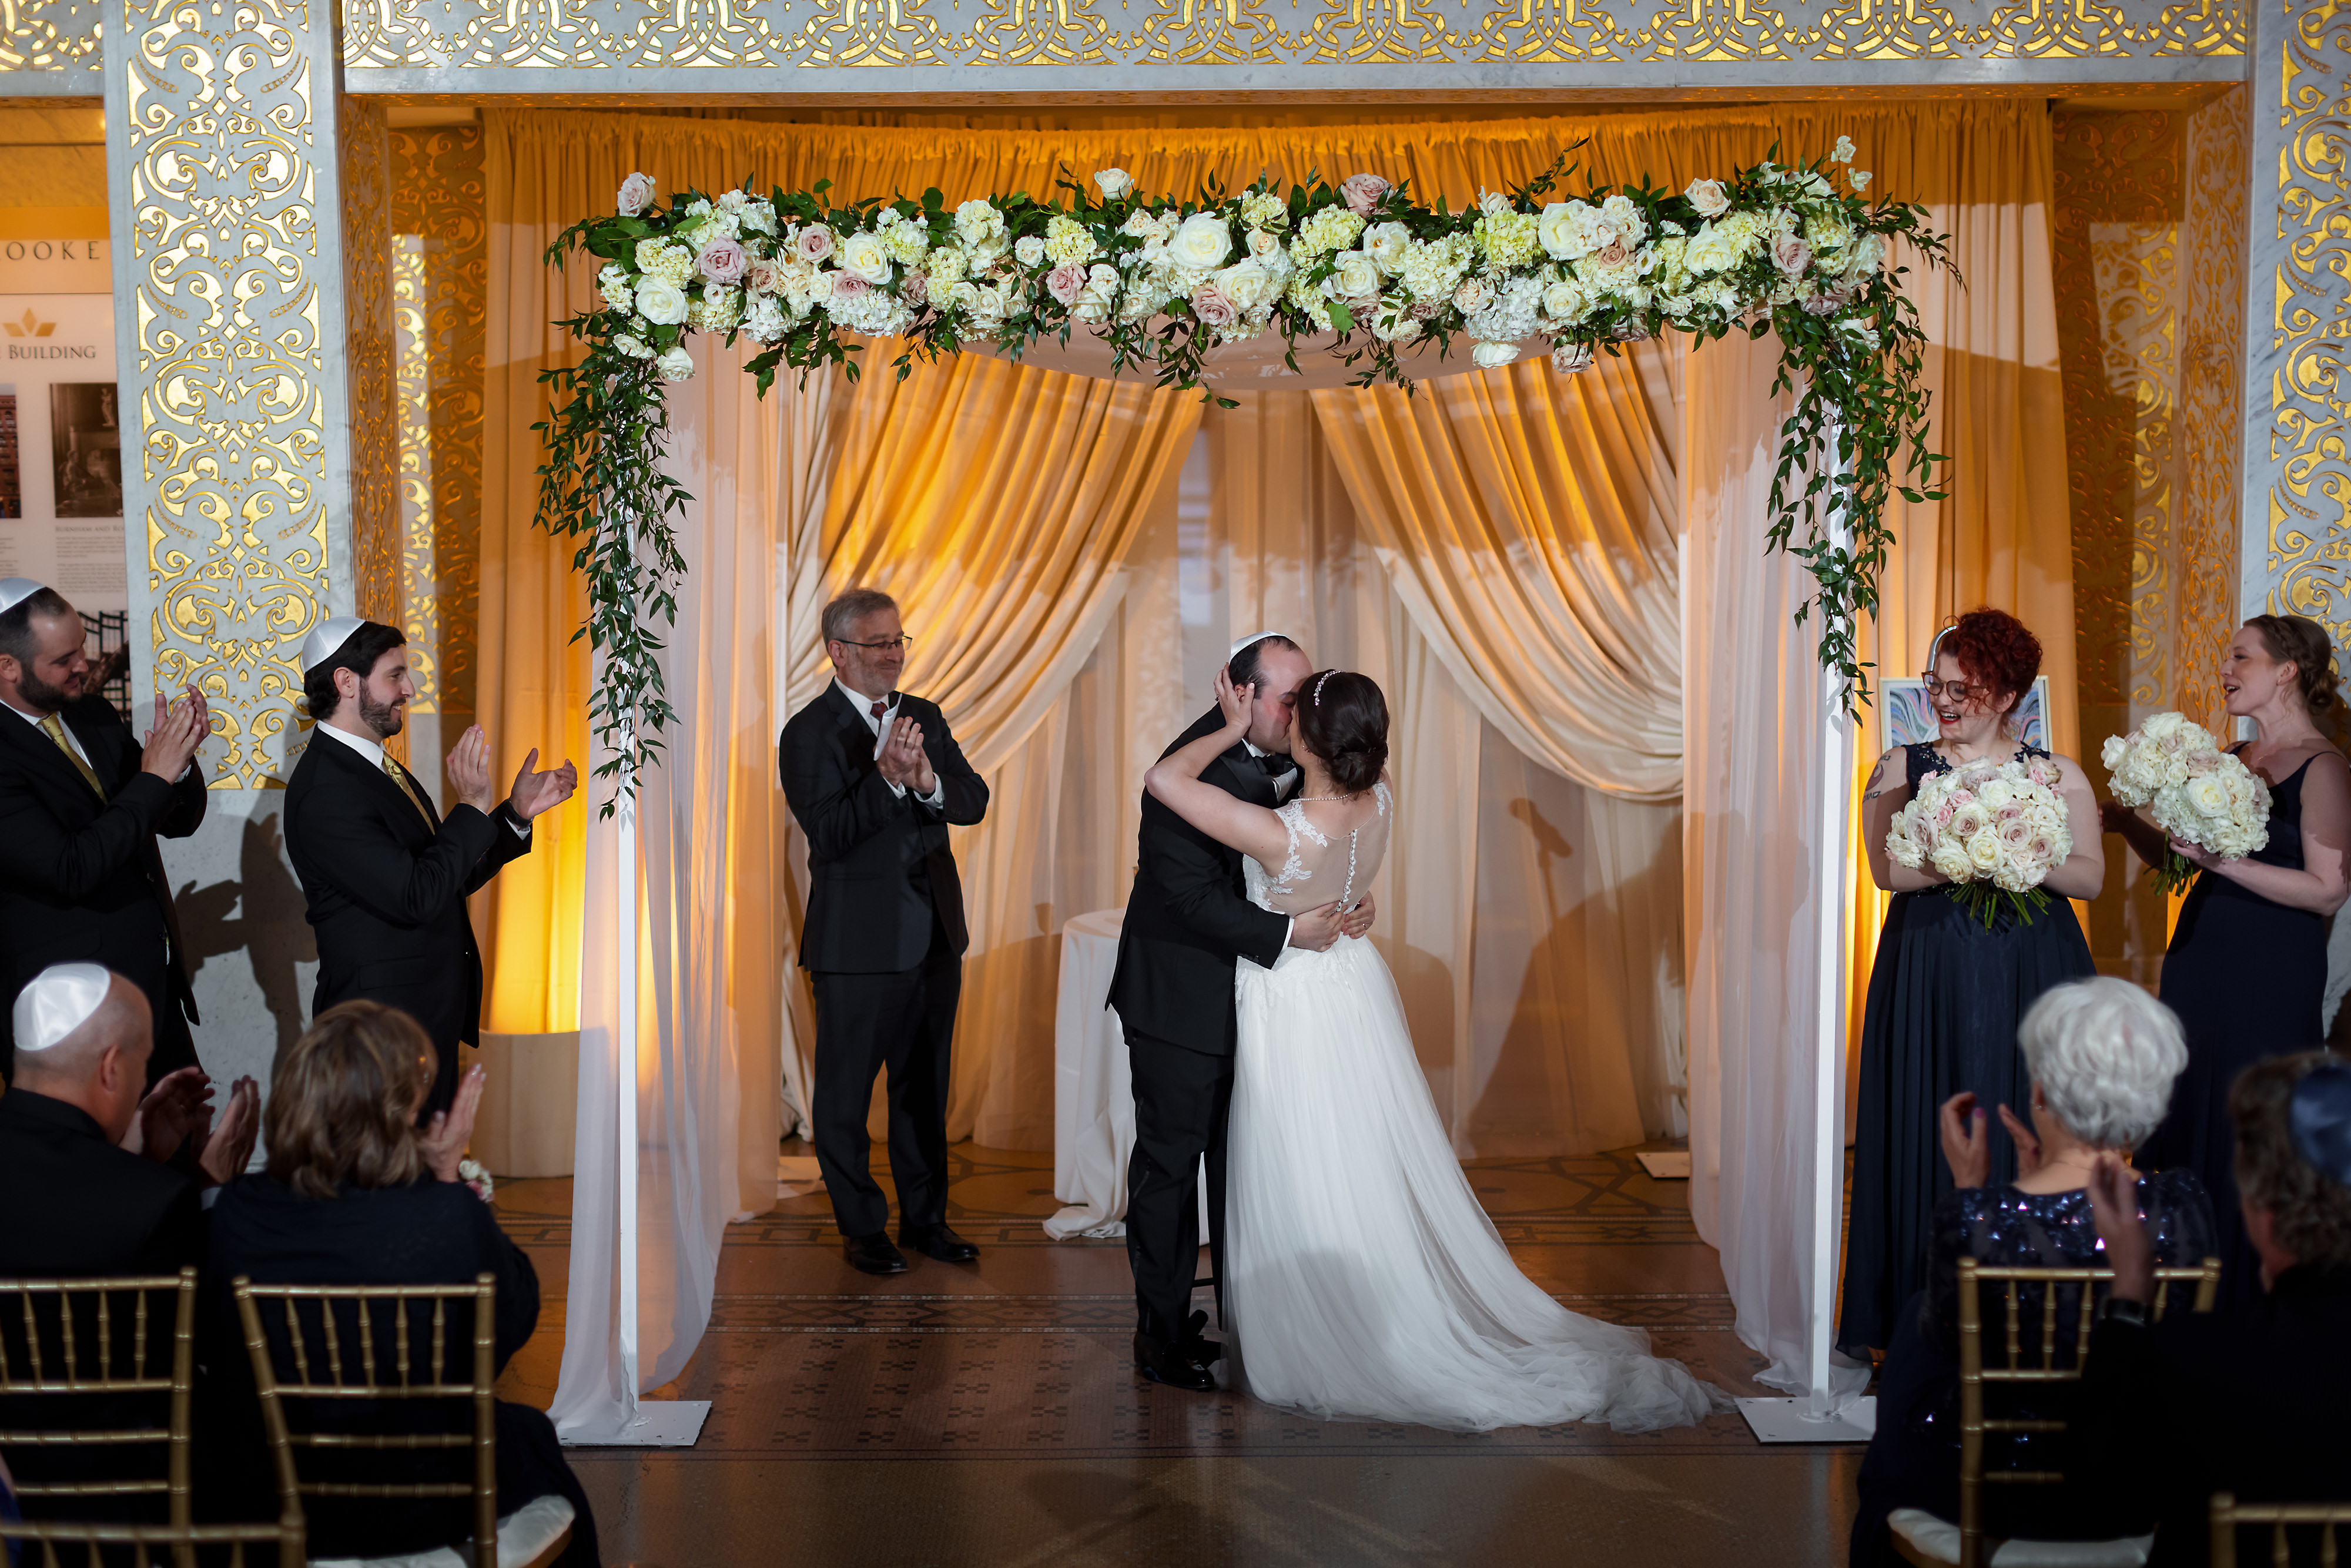 Bride and groom kiss during wedding ceremony at the Rookery Building in Chicago